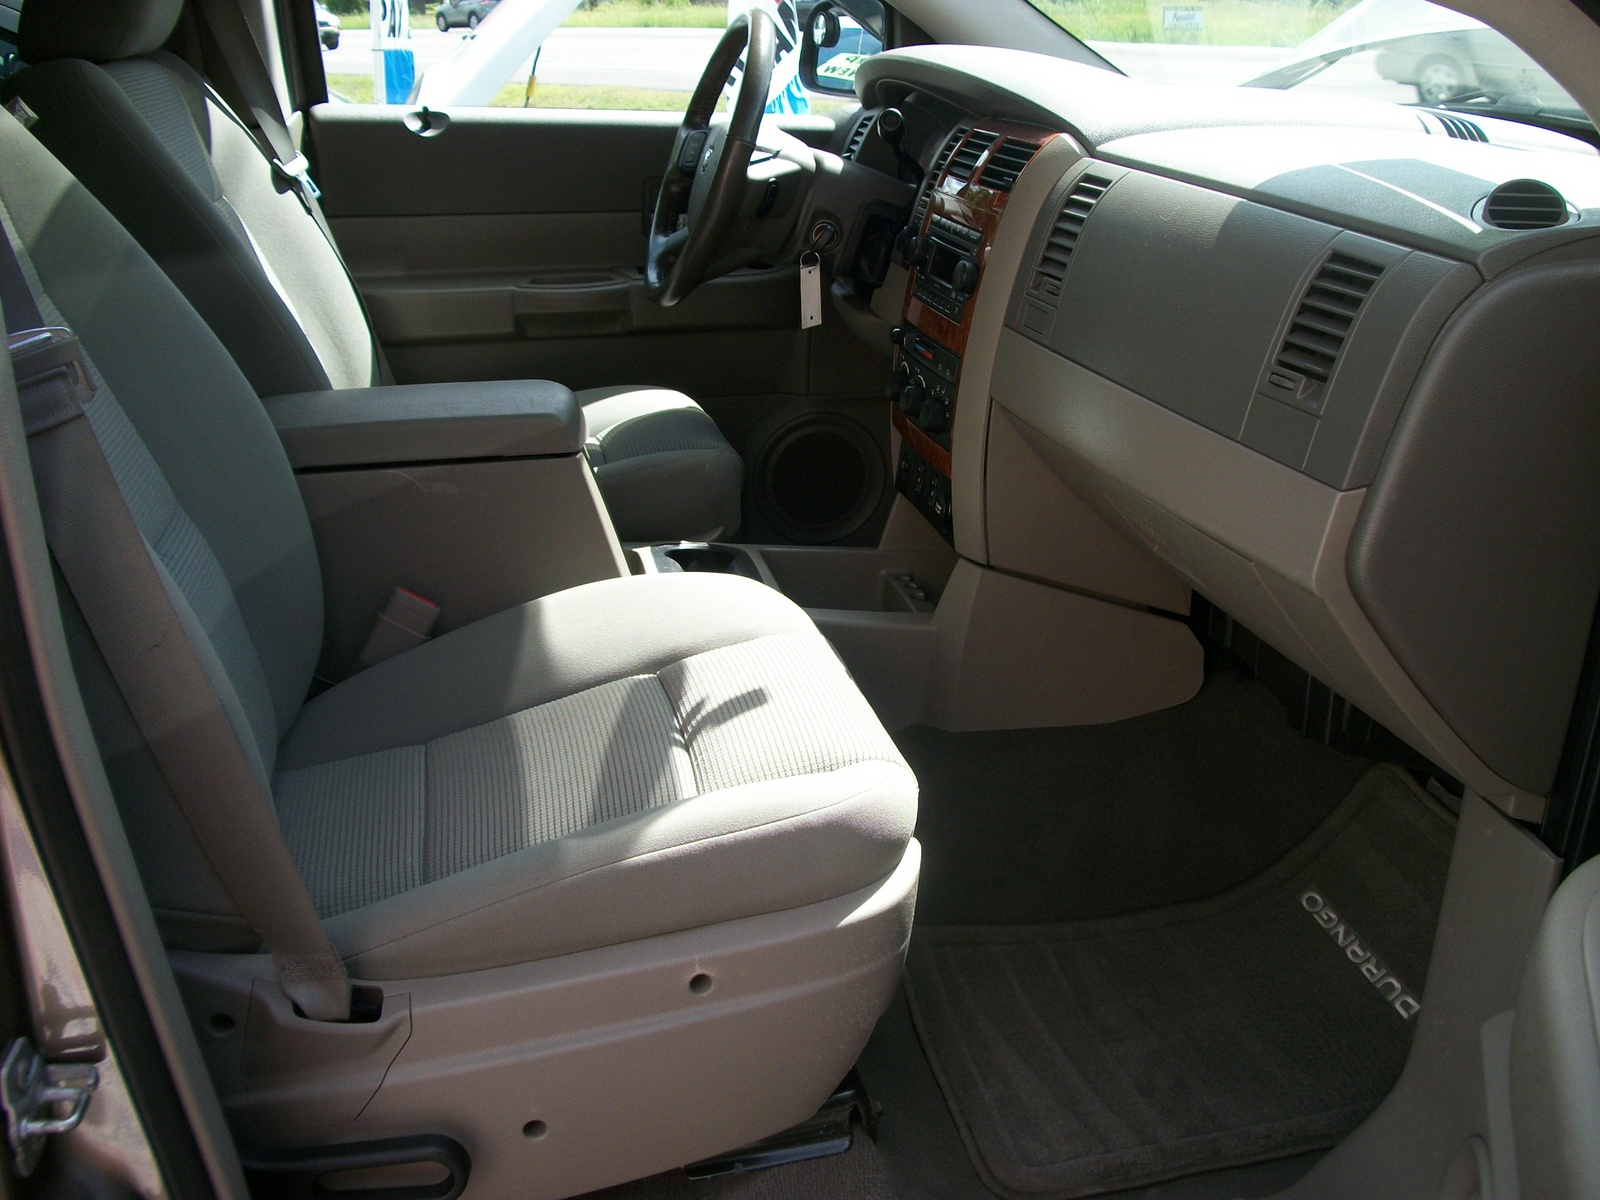 photos of dodge durango photo galleries on flipacars. Black Bedroom Furniture Sets. Home Design Ideas